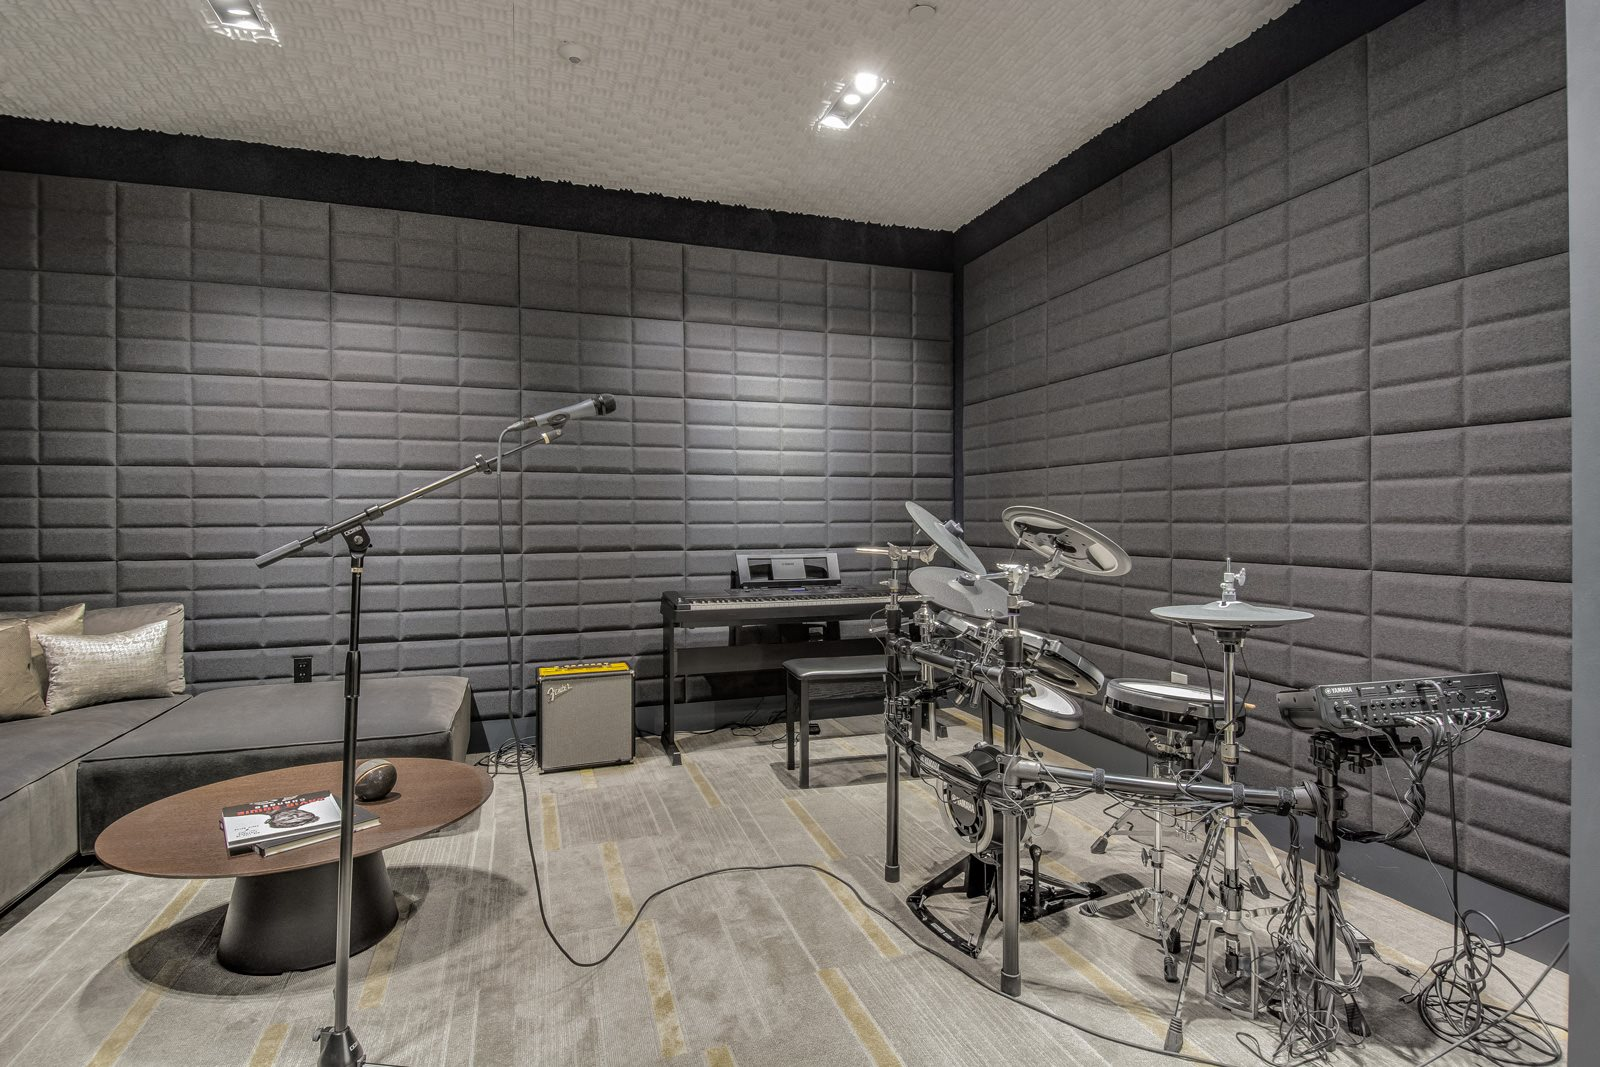 Music Studio at Stratus, 820 Lenora St., WA